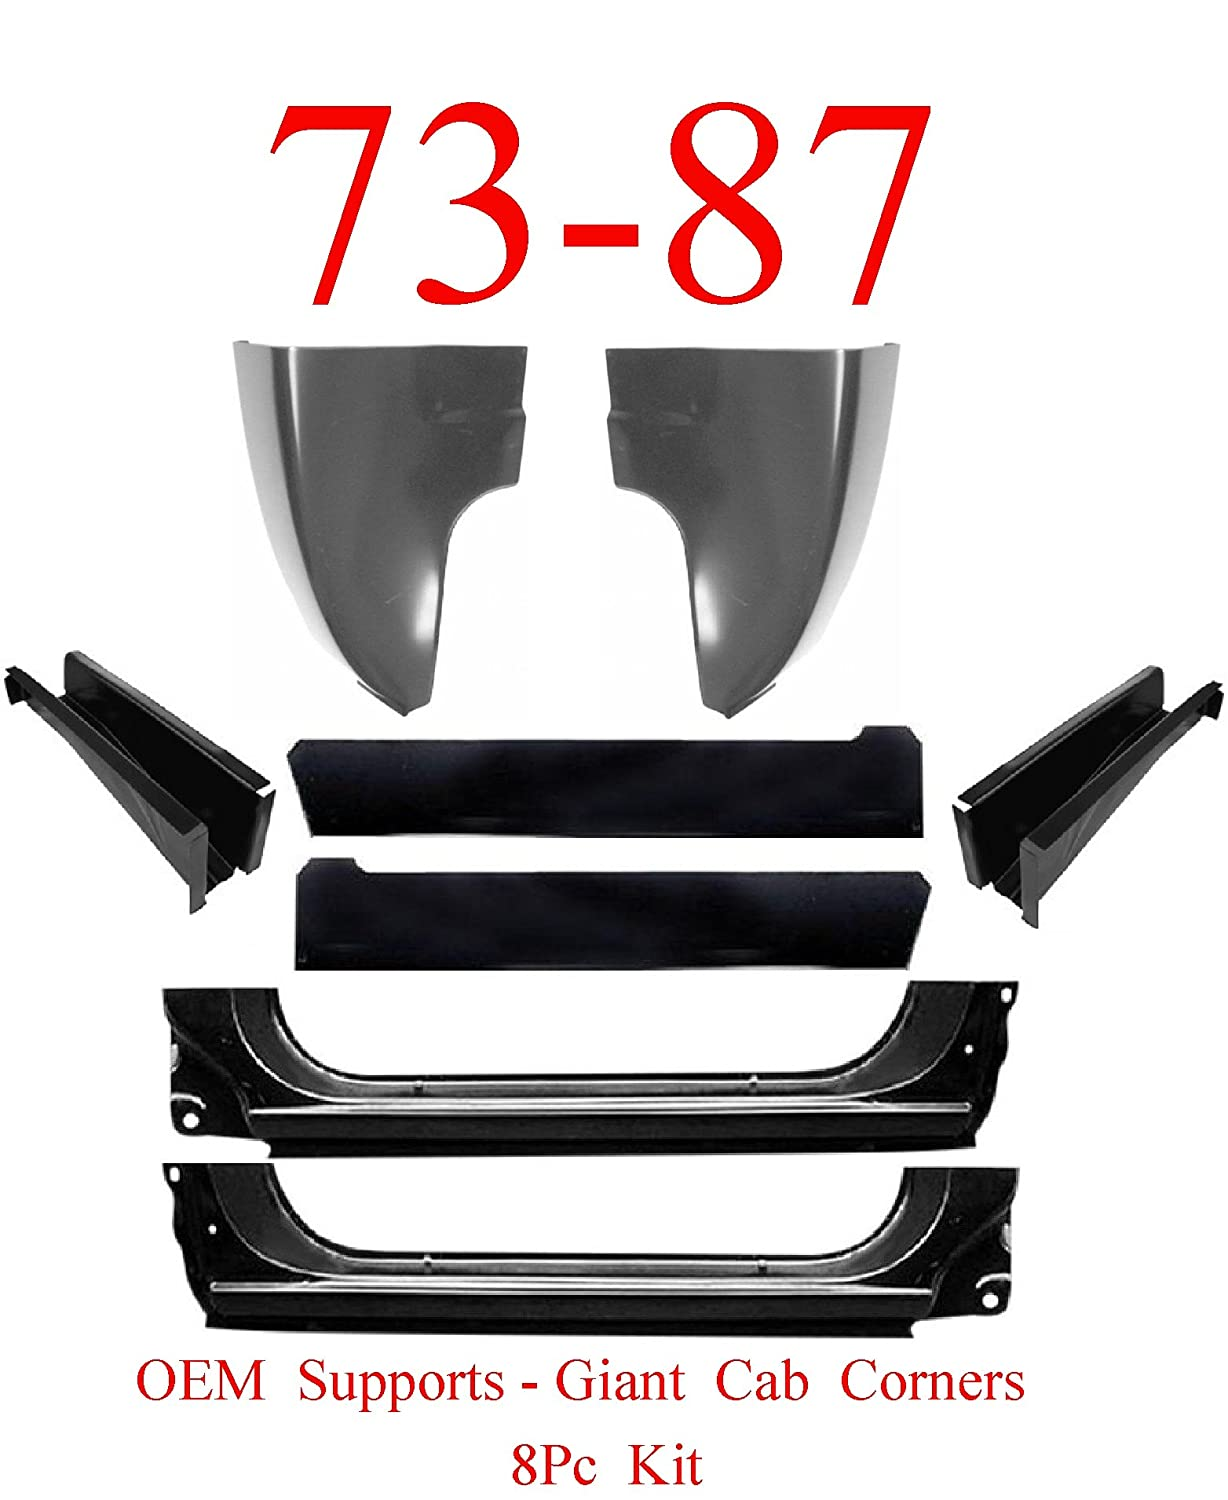 73-87 OEM Extended Chevy 14Pc Cab Repair Kit